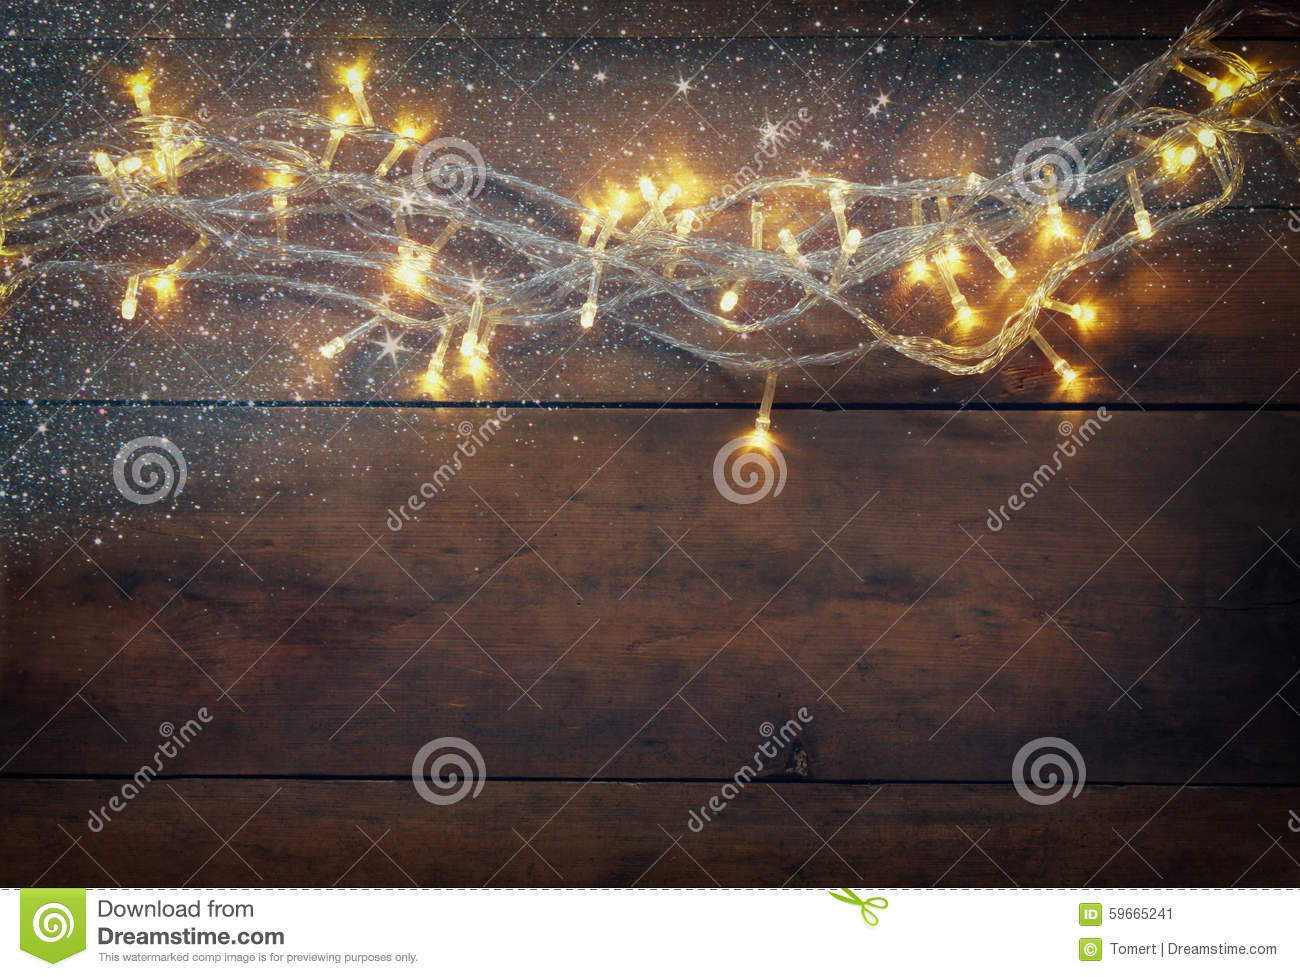 Christmas warm gold garland lights on wooden rustic background. filtered image with glitter overlay